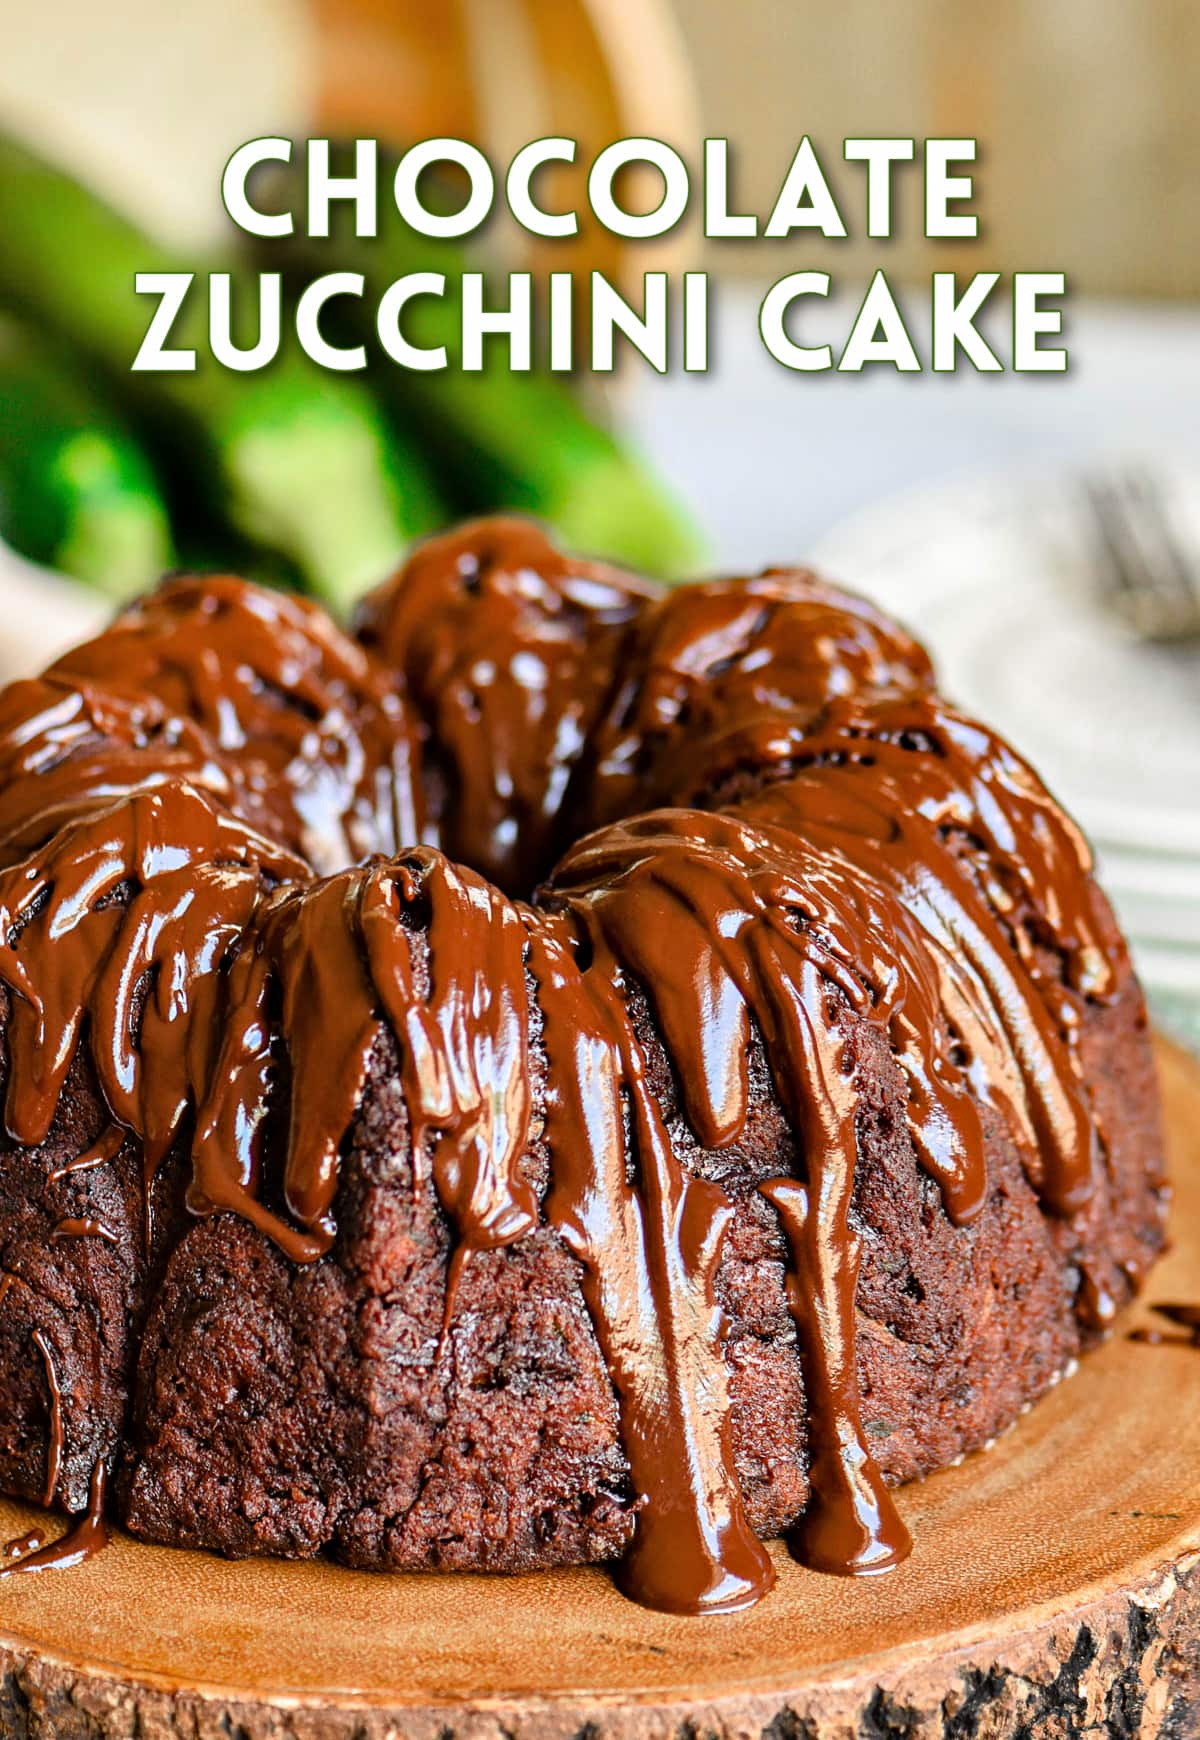 whole chocolate zucchini bundt cake on wood cake stand with rich chocolate glaze on top of cake.